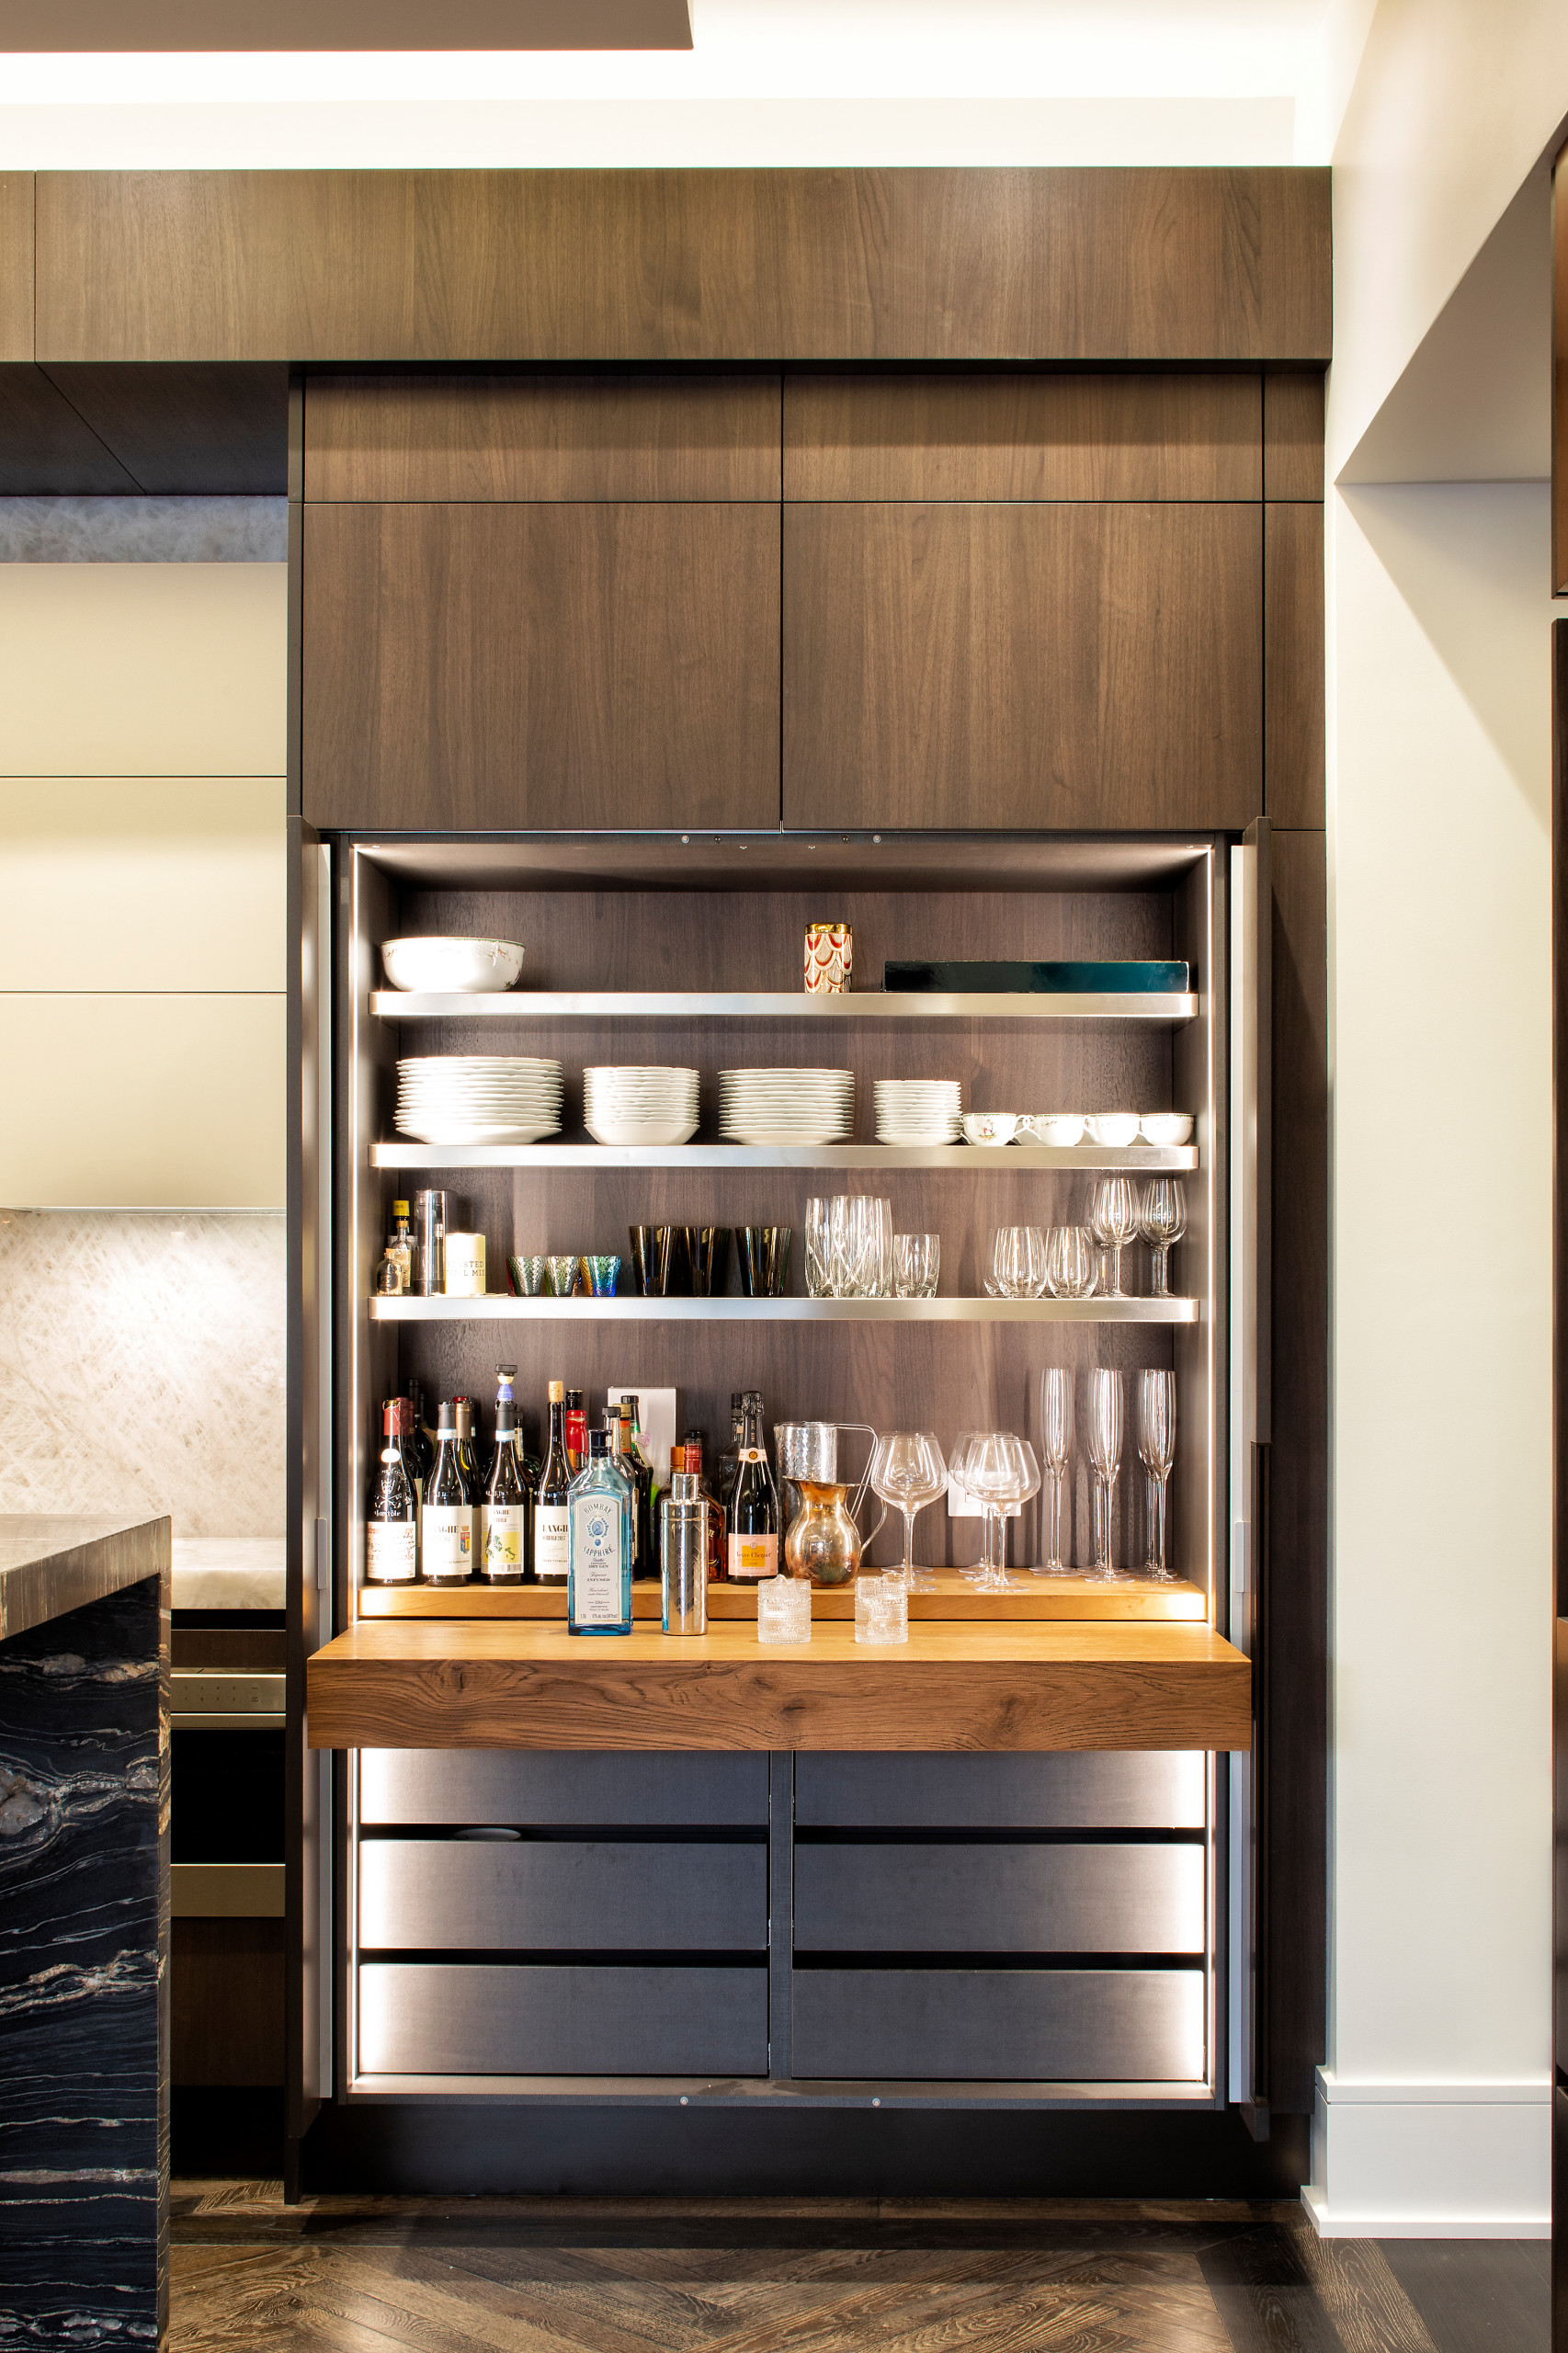 75 Beautiful Home Bar Pictures Ideas February 2021 Houzz